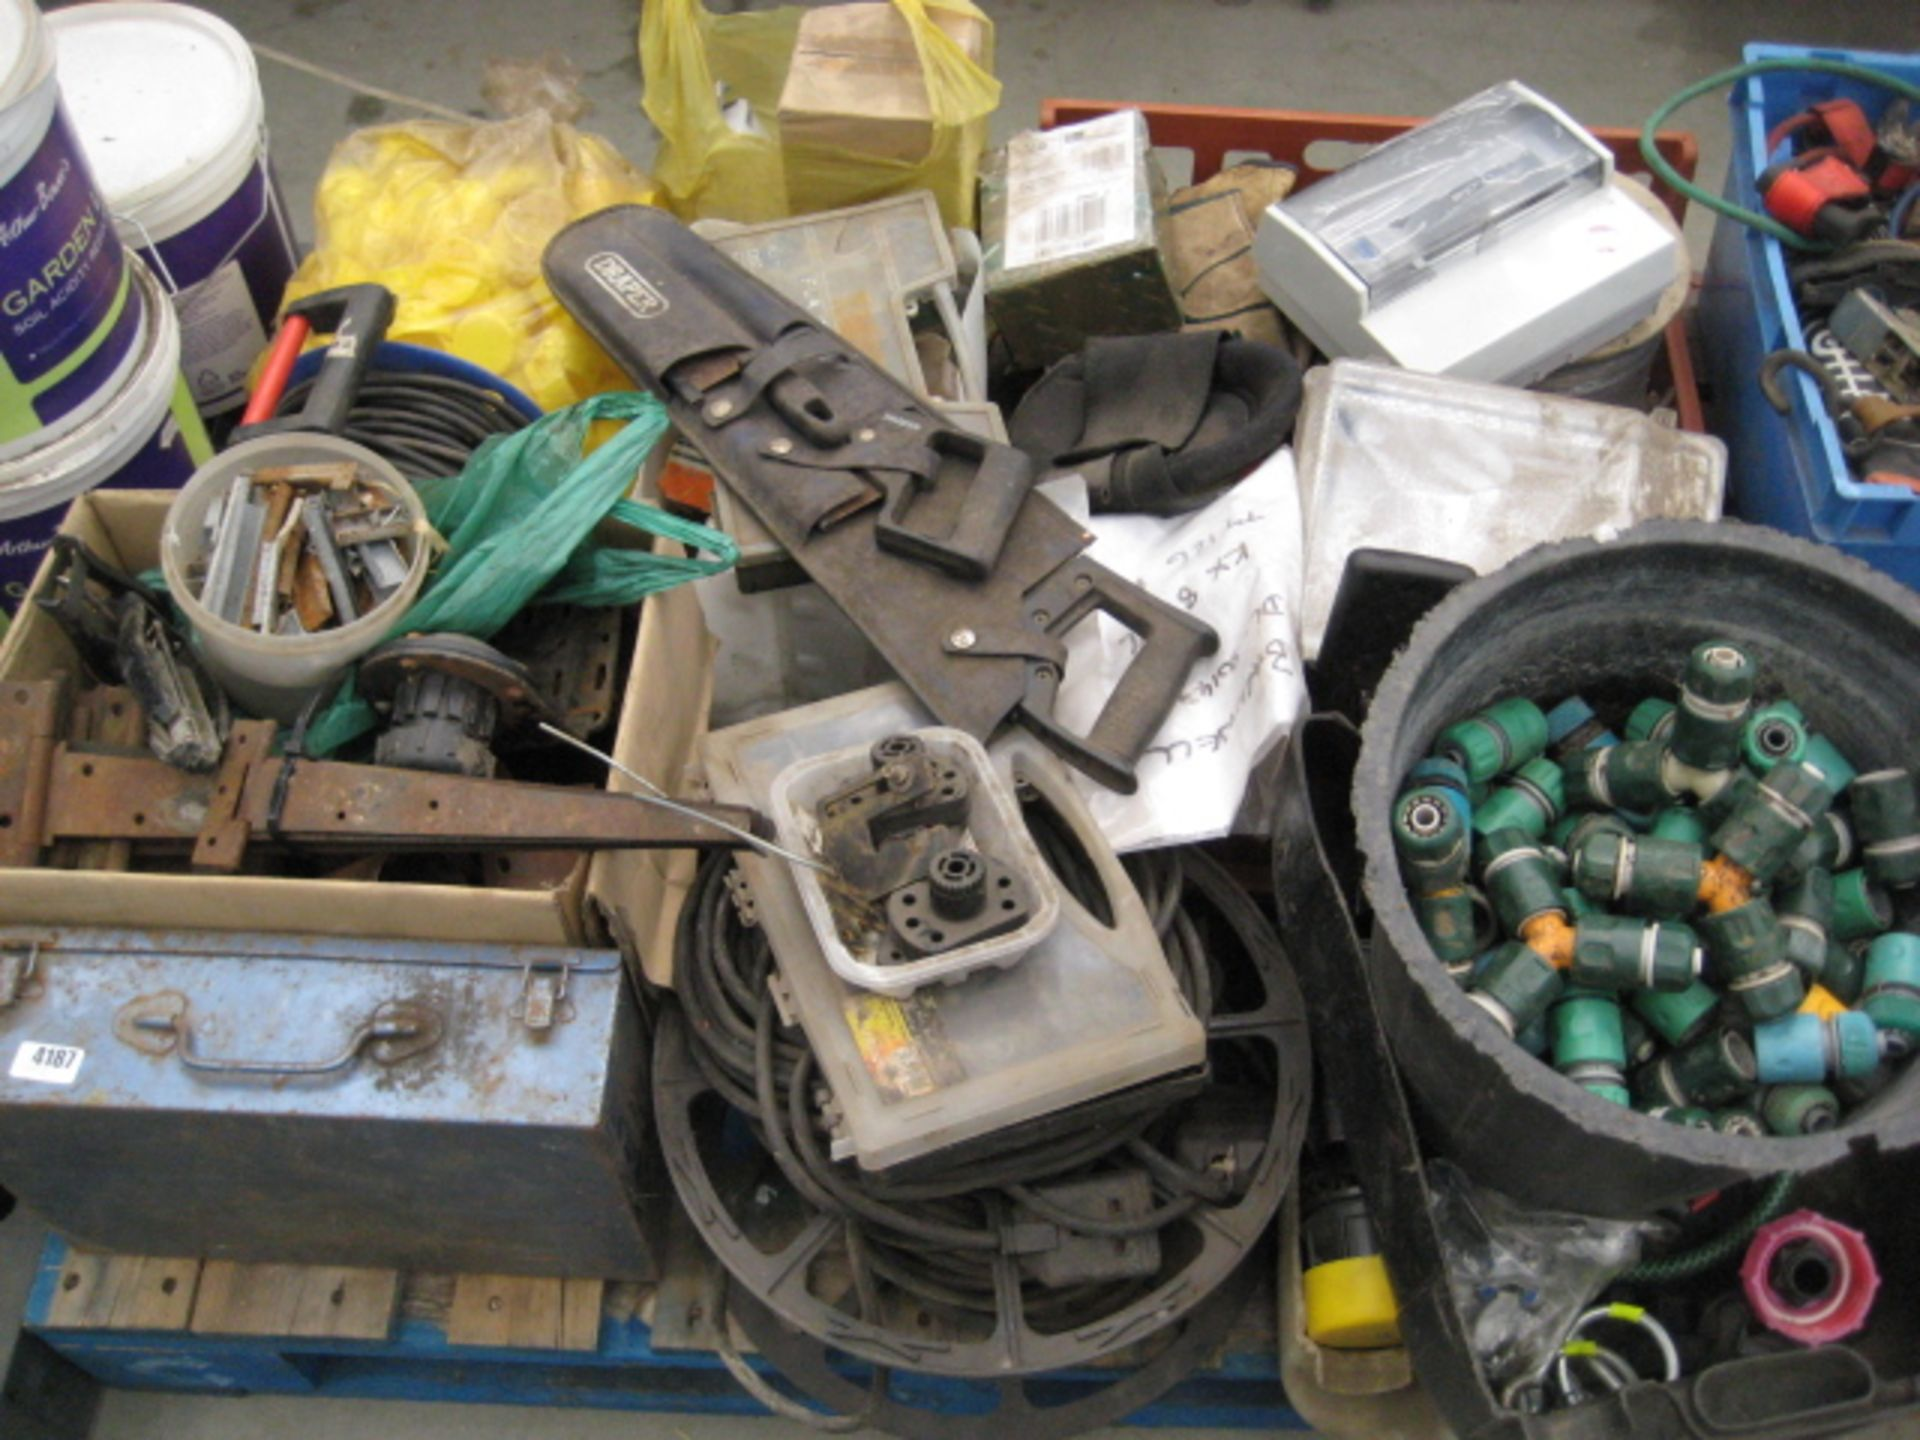 Lot 4187 - Pallet containing a quantity of work gloves, extension lead, hinges, hose lock type fittings,